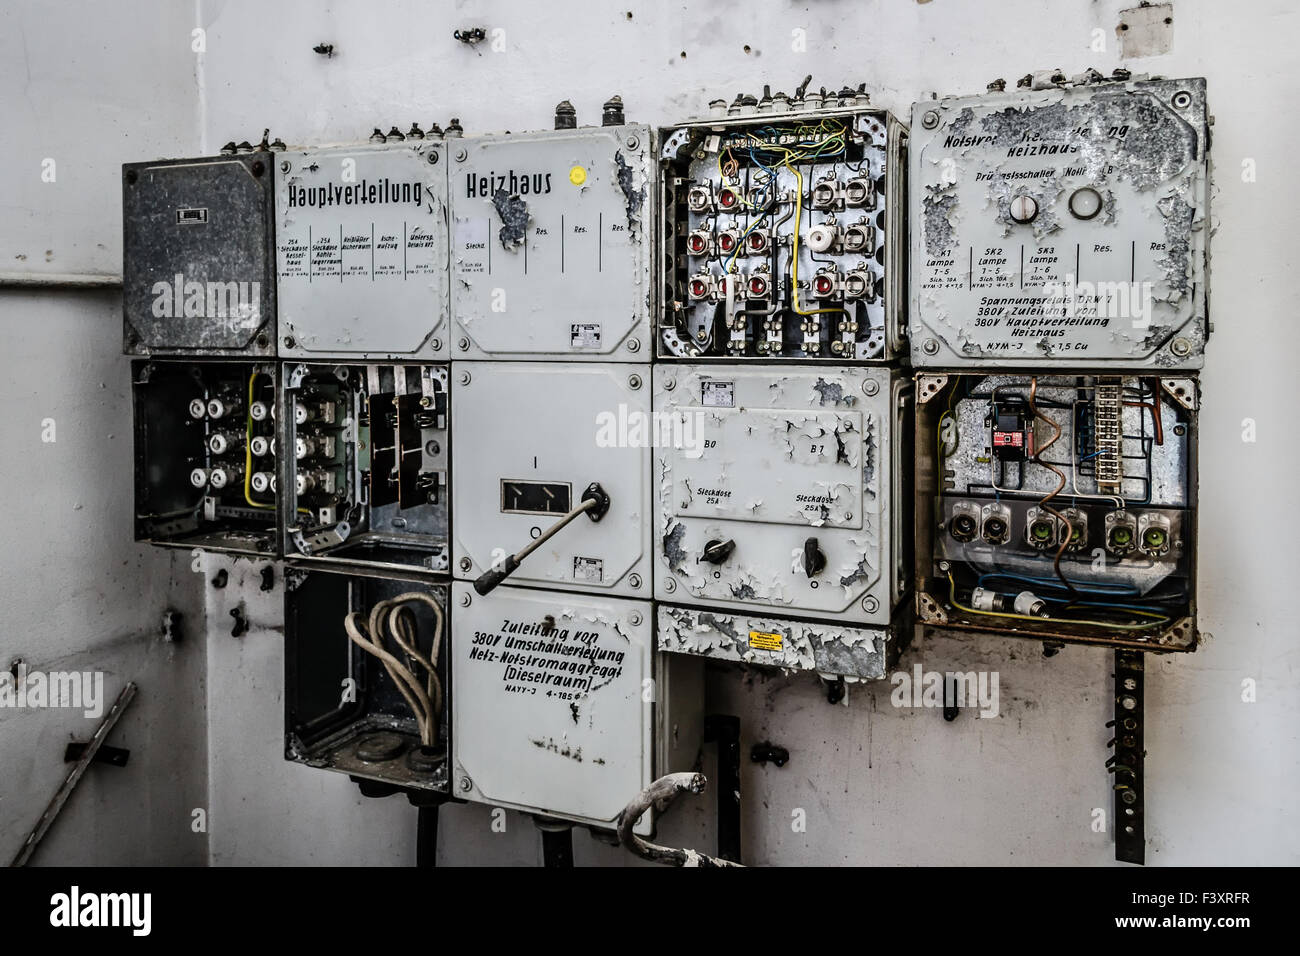 Old Fuse Box Blog Wiring Diagram 100 Amp Electrical Stock Photos Images Alamy Panel